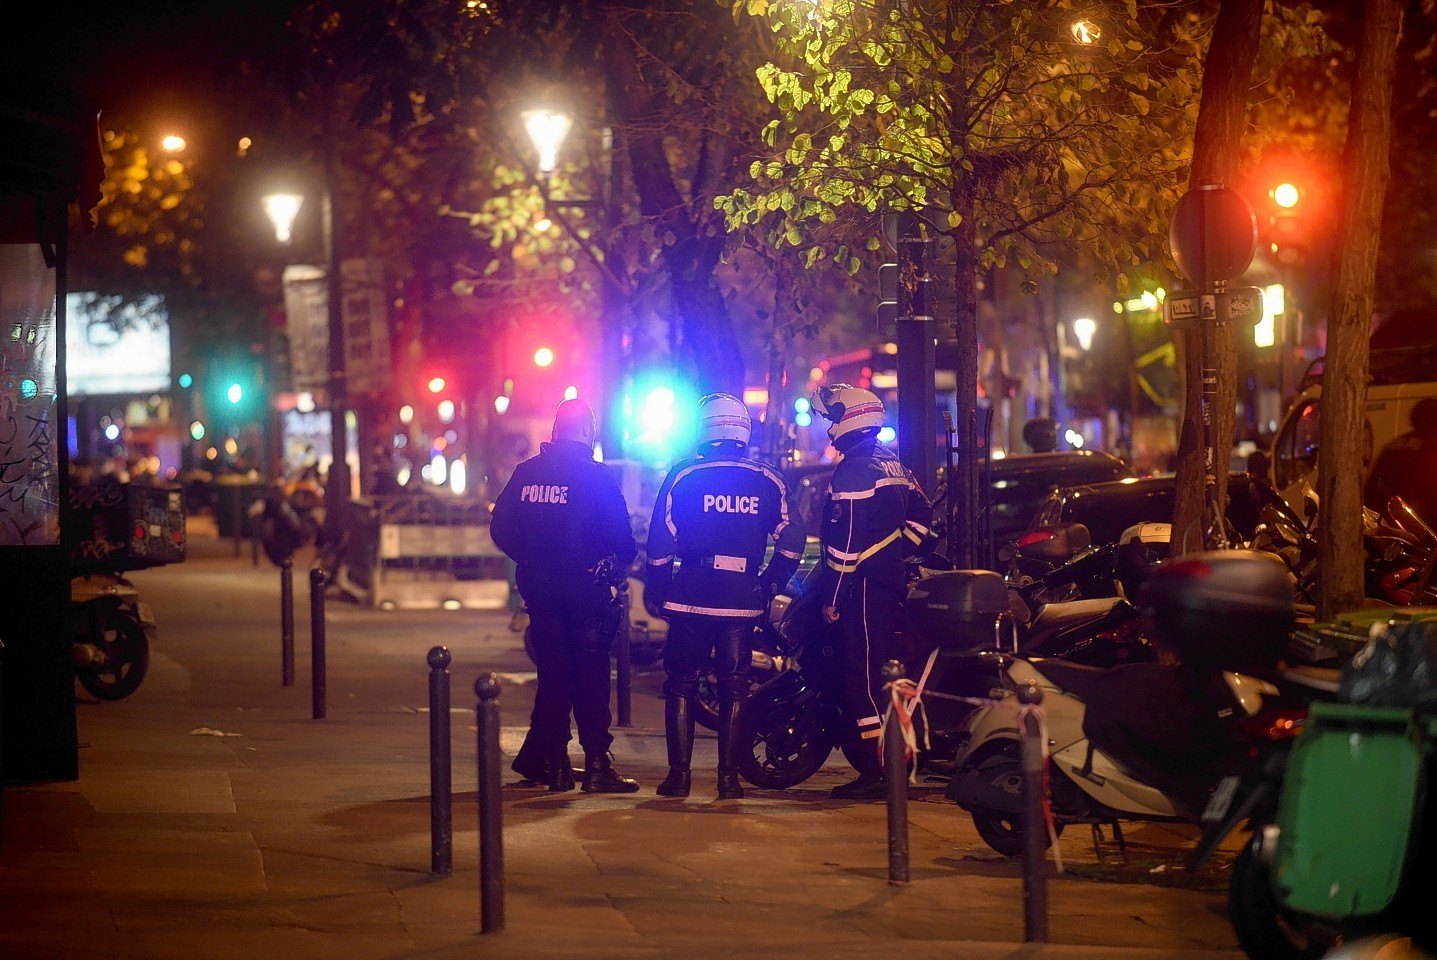 Gunfire and explosions in multiple locations erupted in the French capital